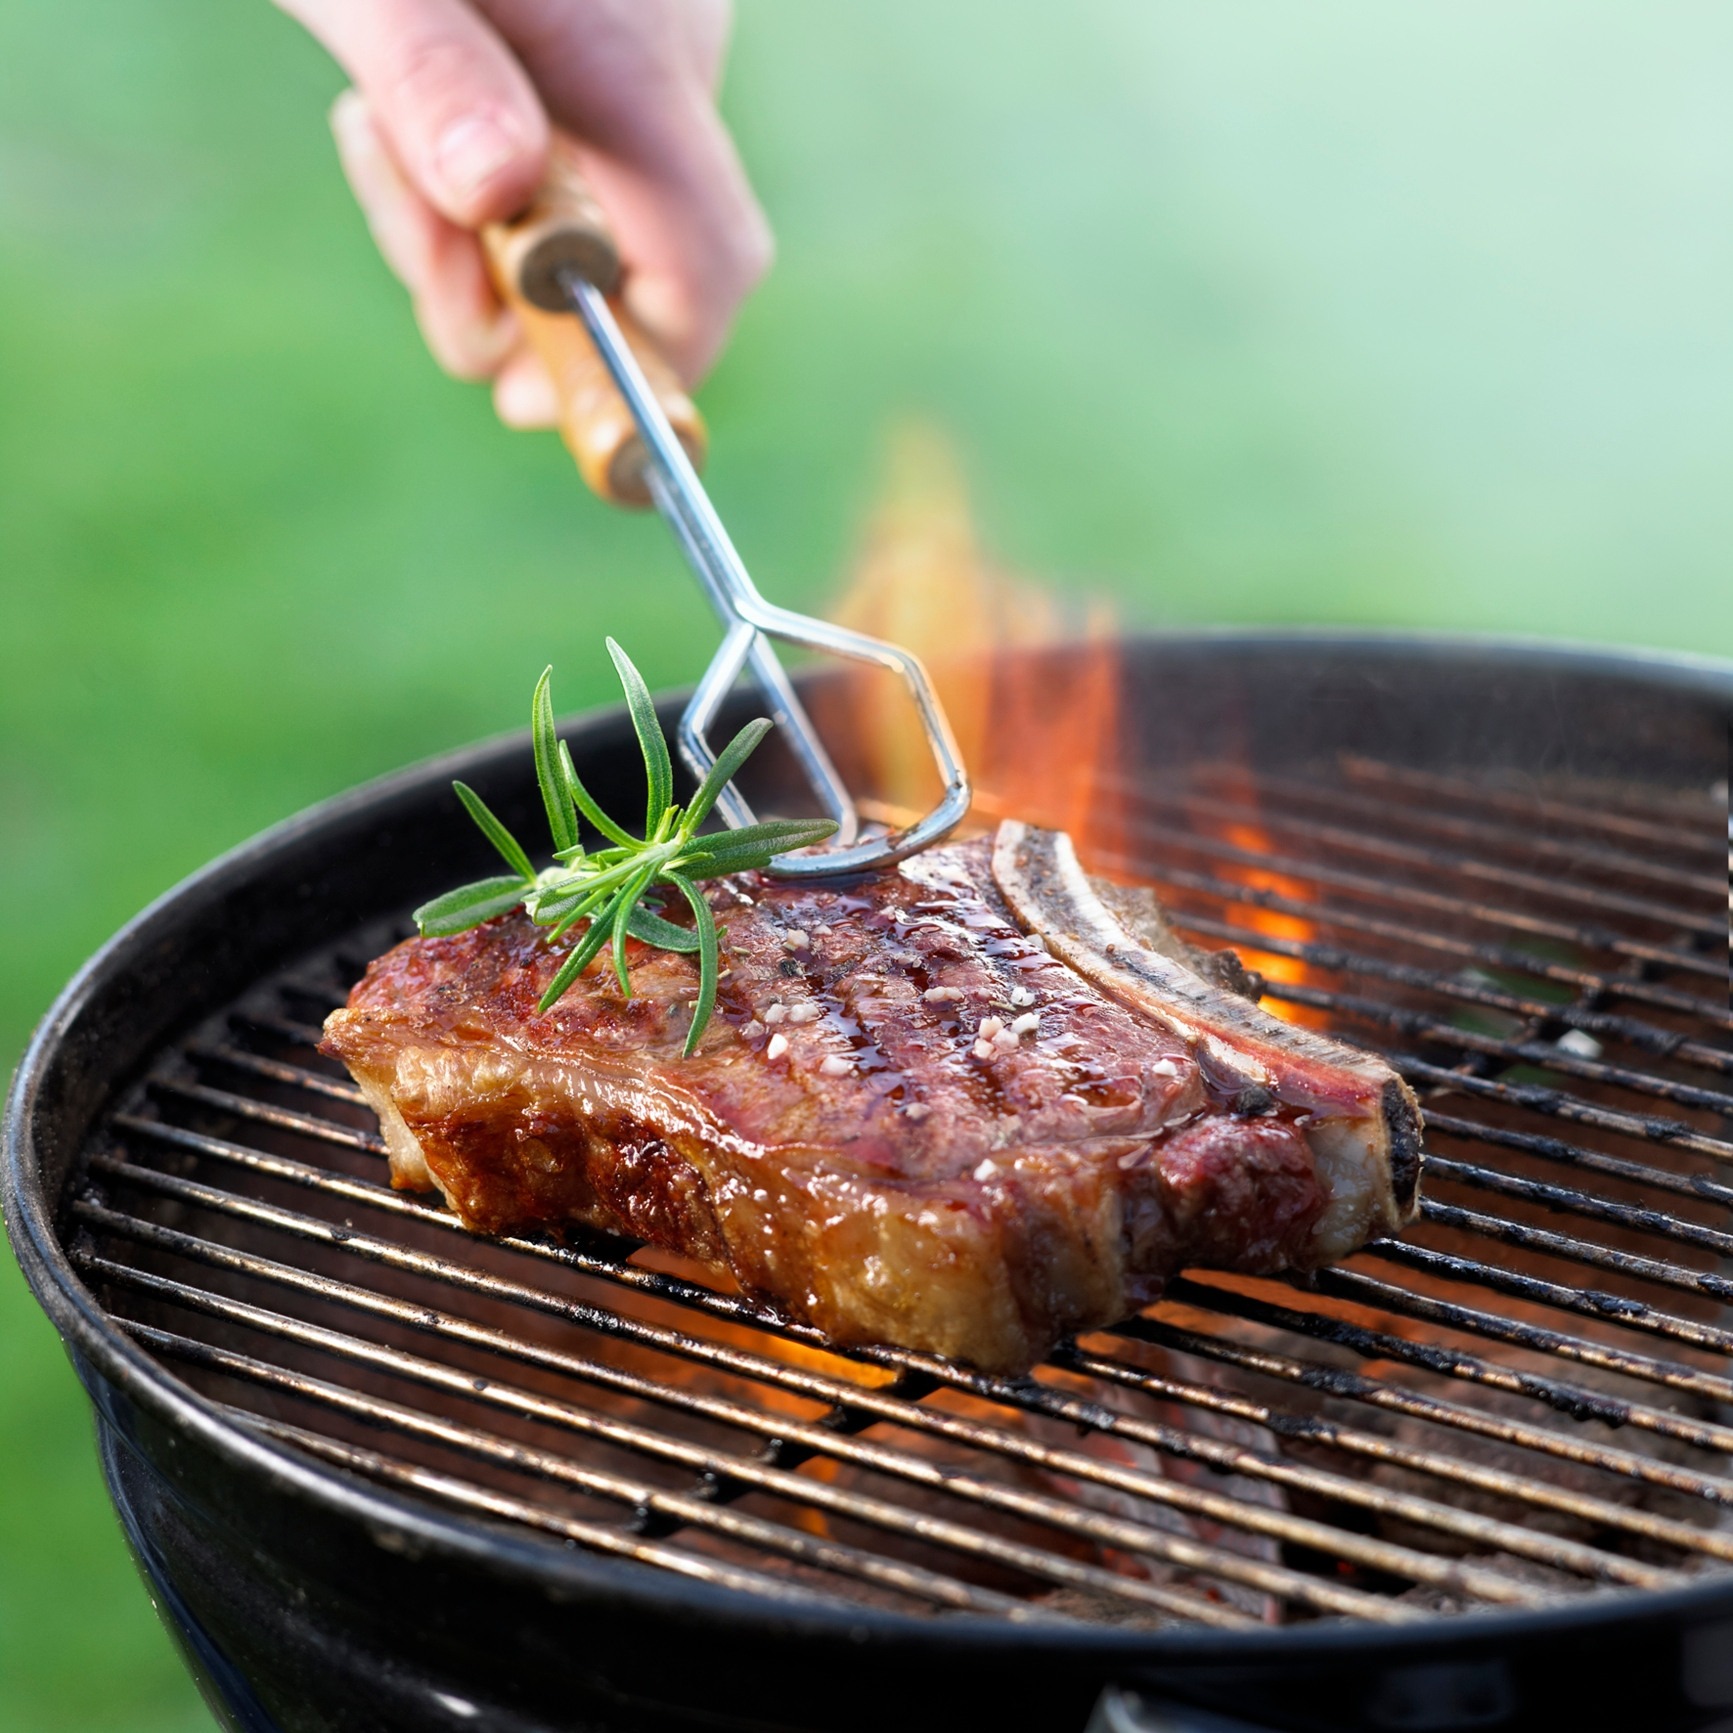 SUMMER FUNDRAISER: A charity barbecue will be held in Hurworth in June. Organisers are appealing for raffle prizes. Stock image.